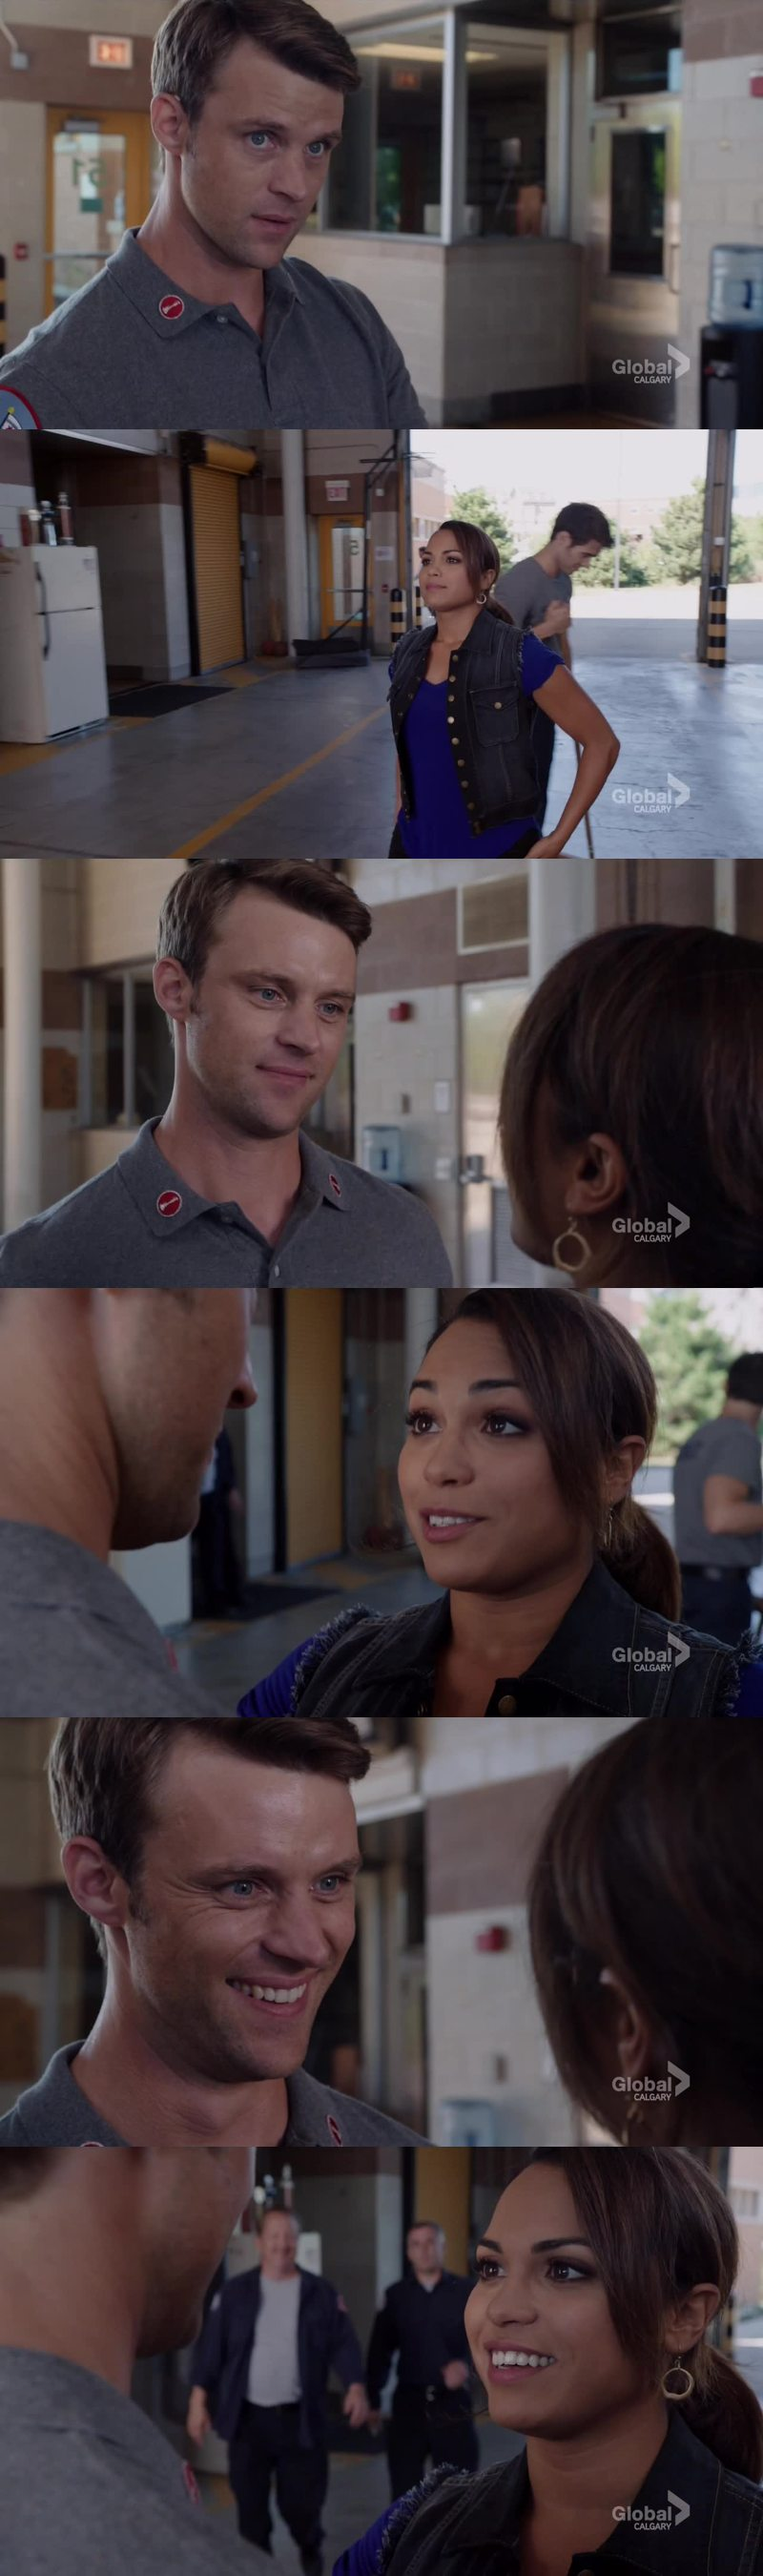 So happy they're back!!!! They're so perfect together!!! I love it!!